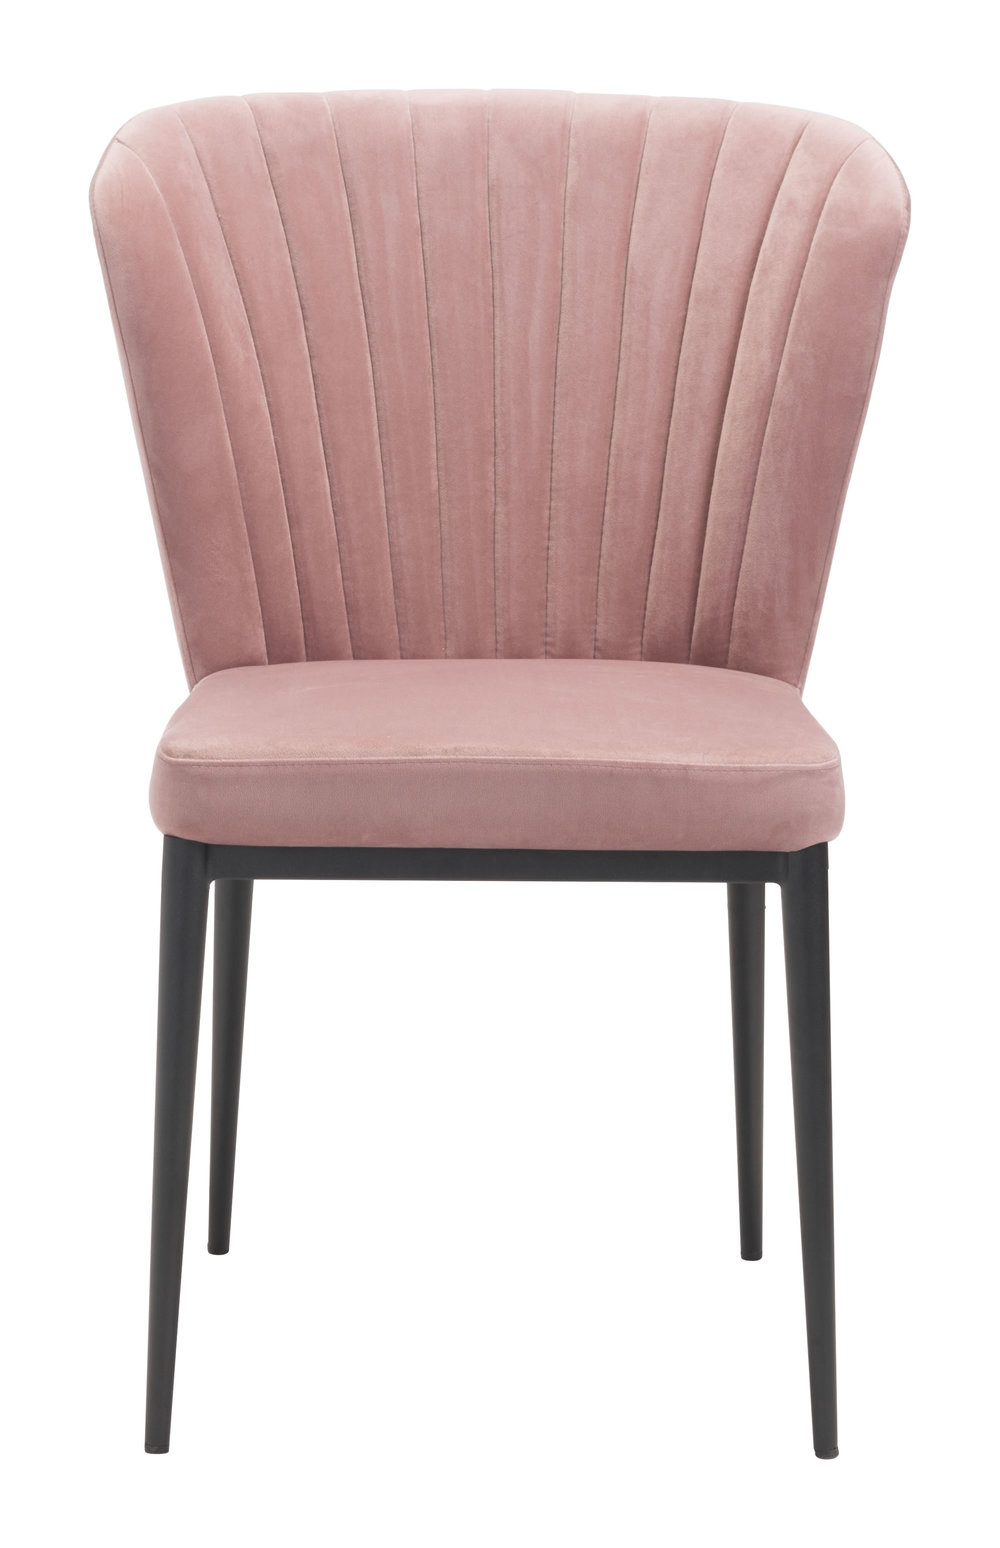 Zuo Modern Contemporary - Tolivere Dining Chair - Set of 2 - Pink